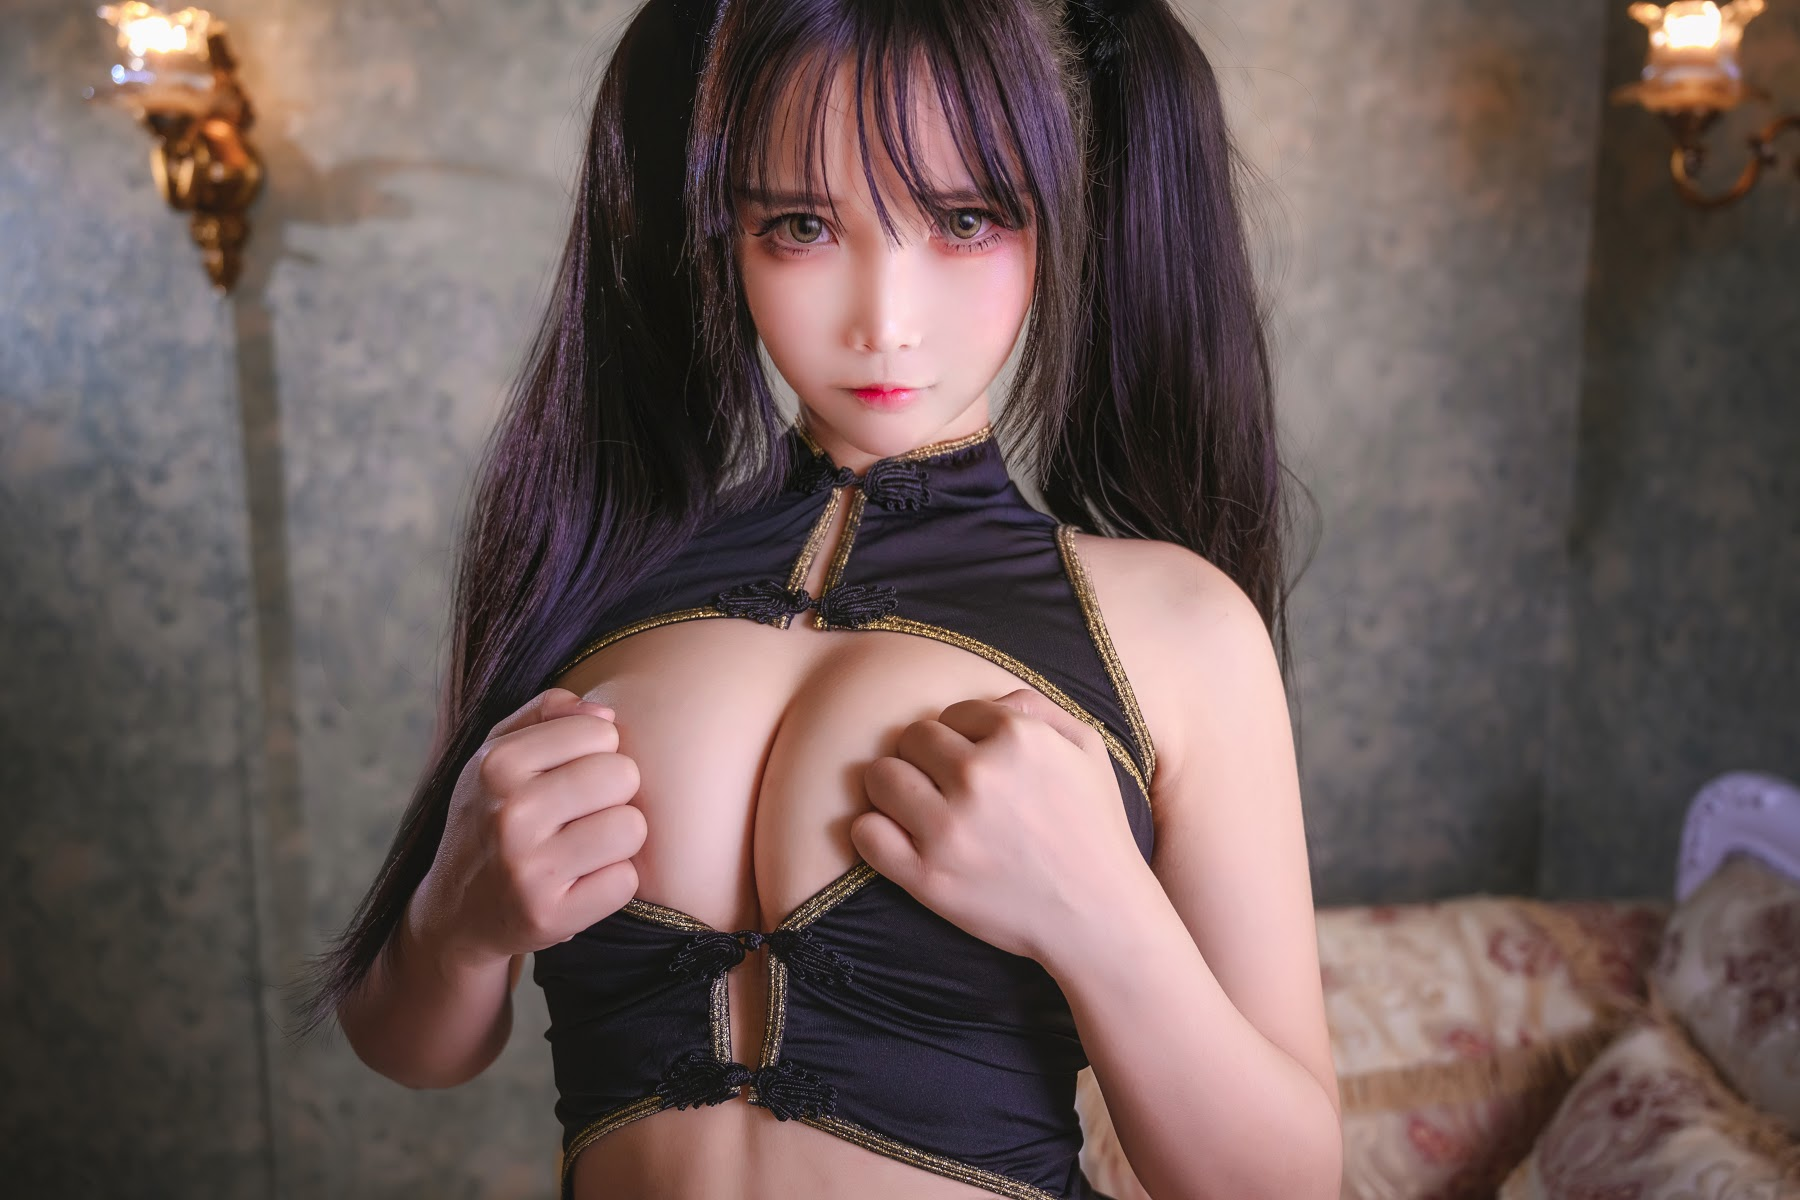 Sexy Chinese beauty with twin tails034